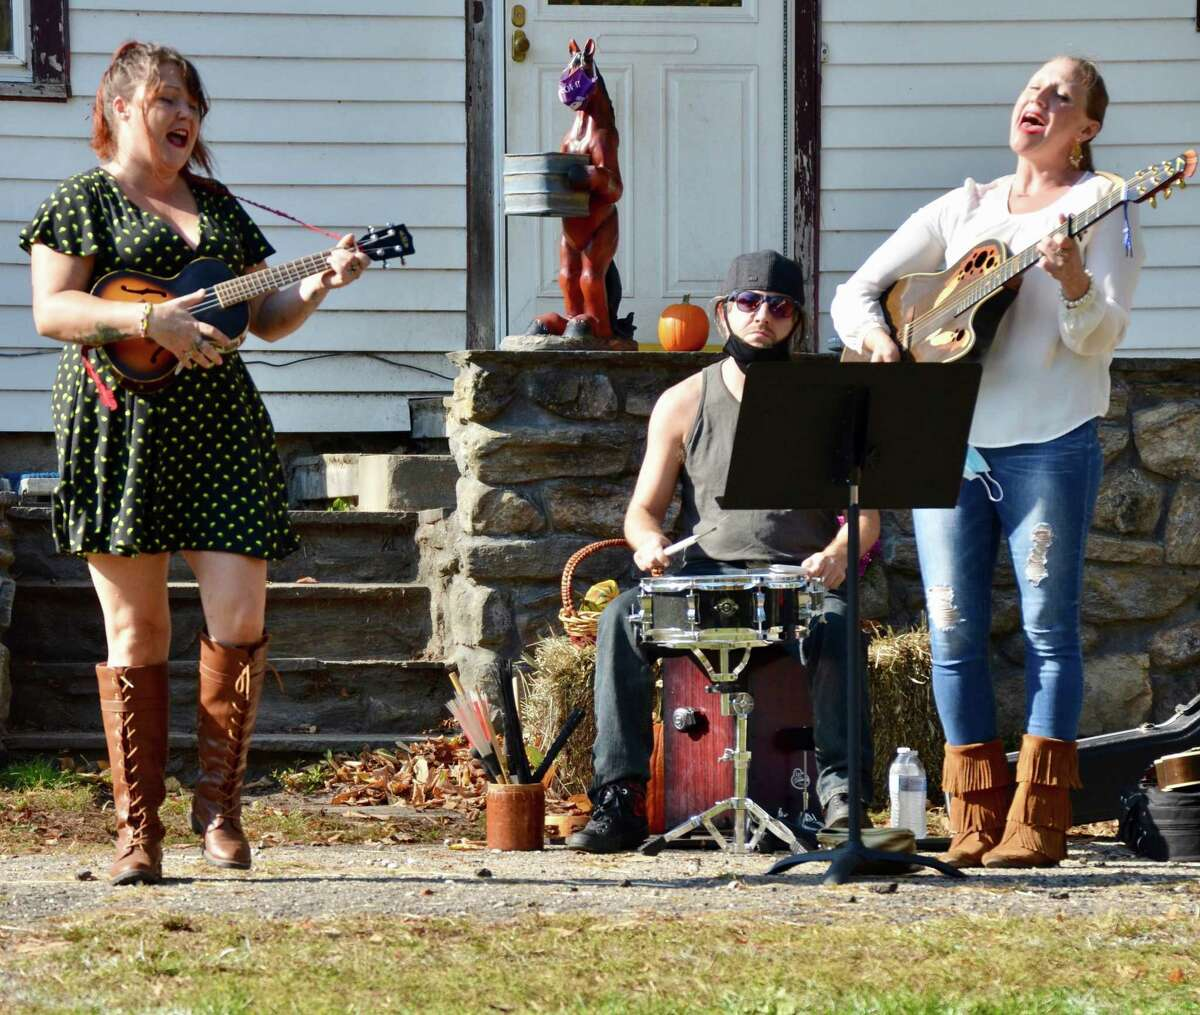 H.O.R.S.E. of CT, 43 Wilbur Road, Washington, is holding a music festival Sept. 25 at the farm. Pictured, Charm City Exiles, one of the bands.